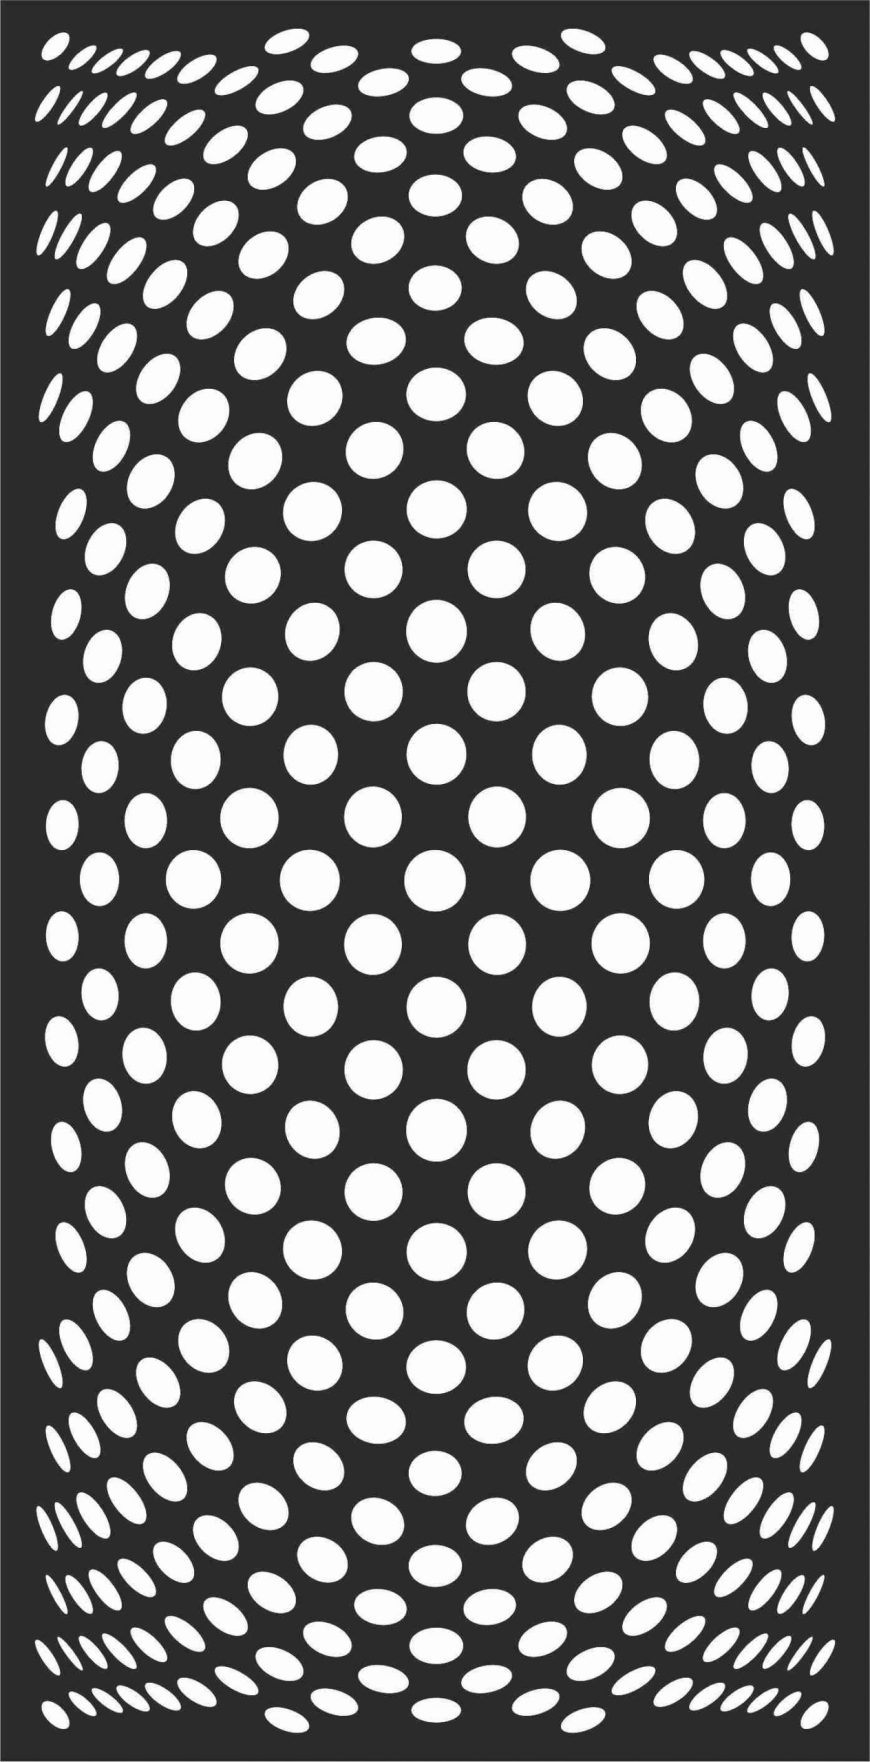 Decorative Screen Patterns For Laser Cutting 137 Free DXF File